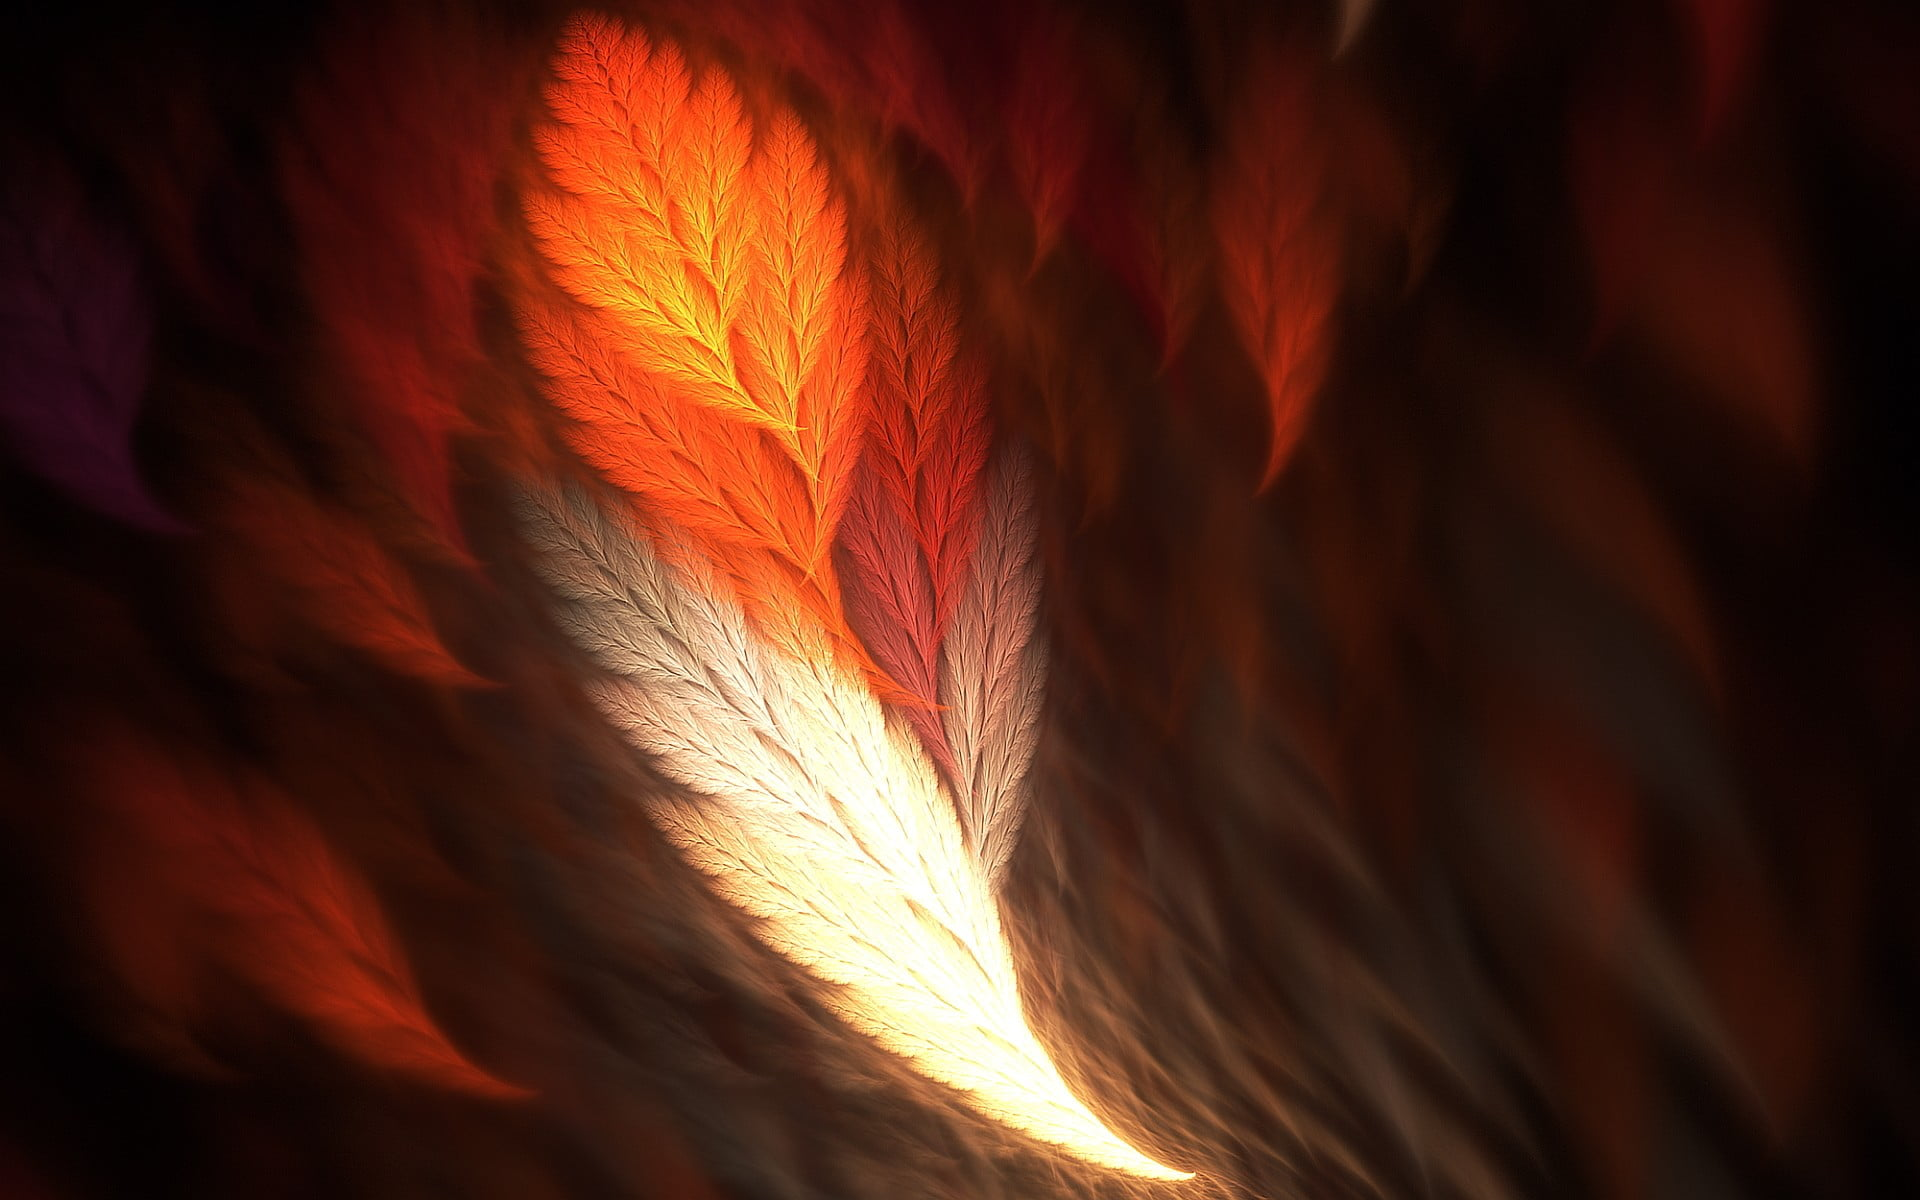 White and orange feather abstract feathers fractal HD wallpaper 1920x1200